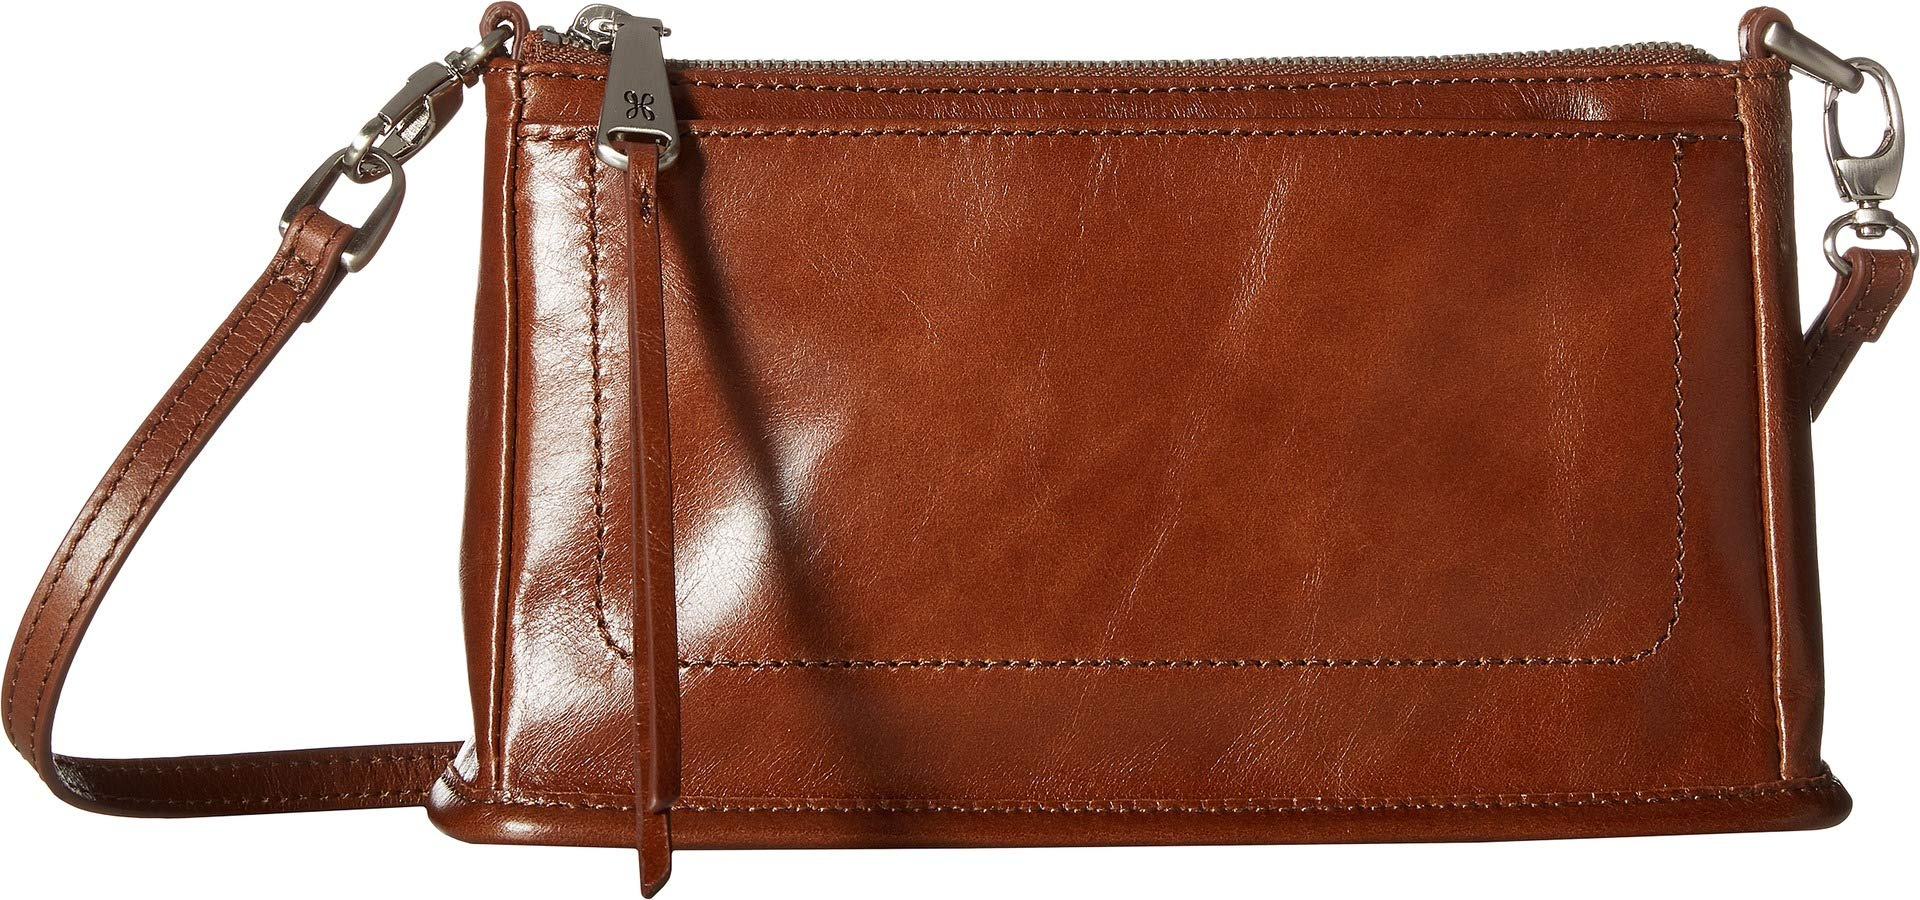 Hobo Women's Vintage Cadence Convertible Crossbody Bag (Woodlands)